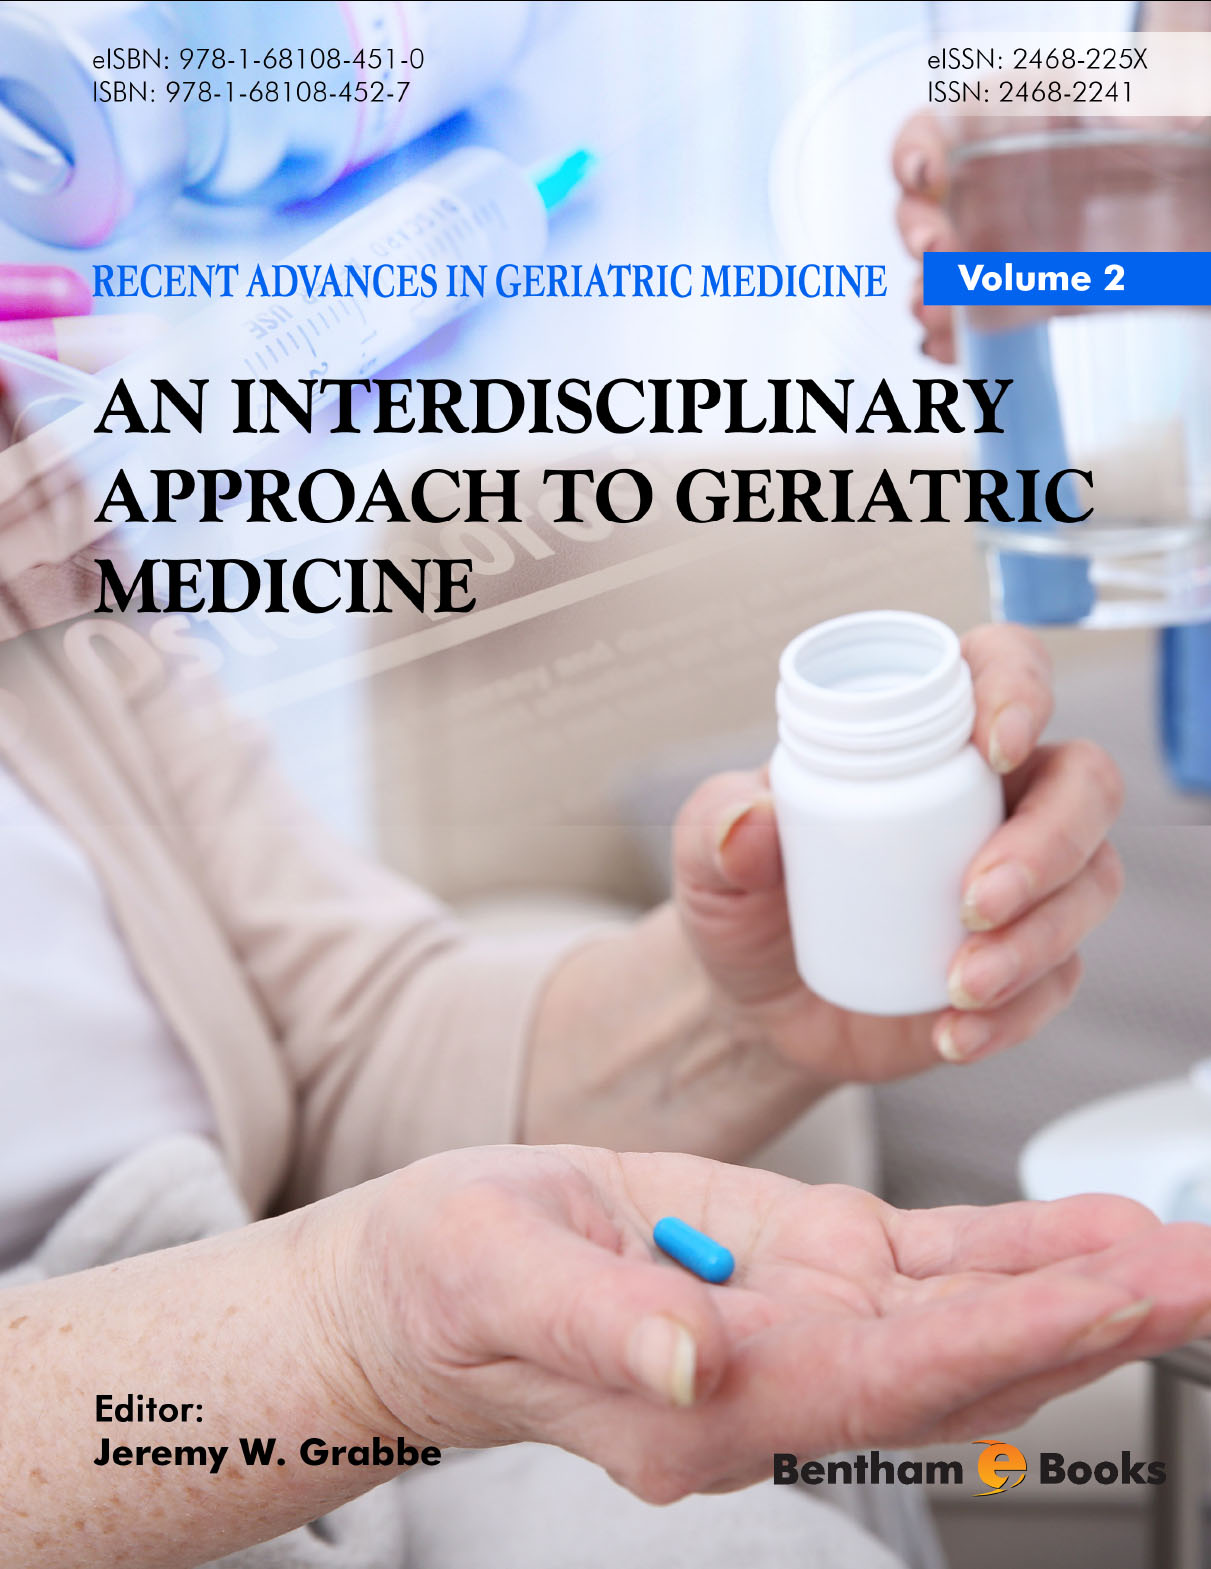 An Interdisciplinary Approach to Geriatric Medicine